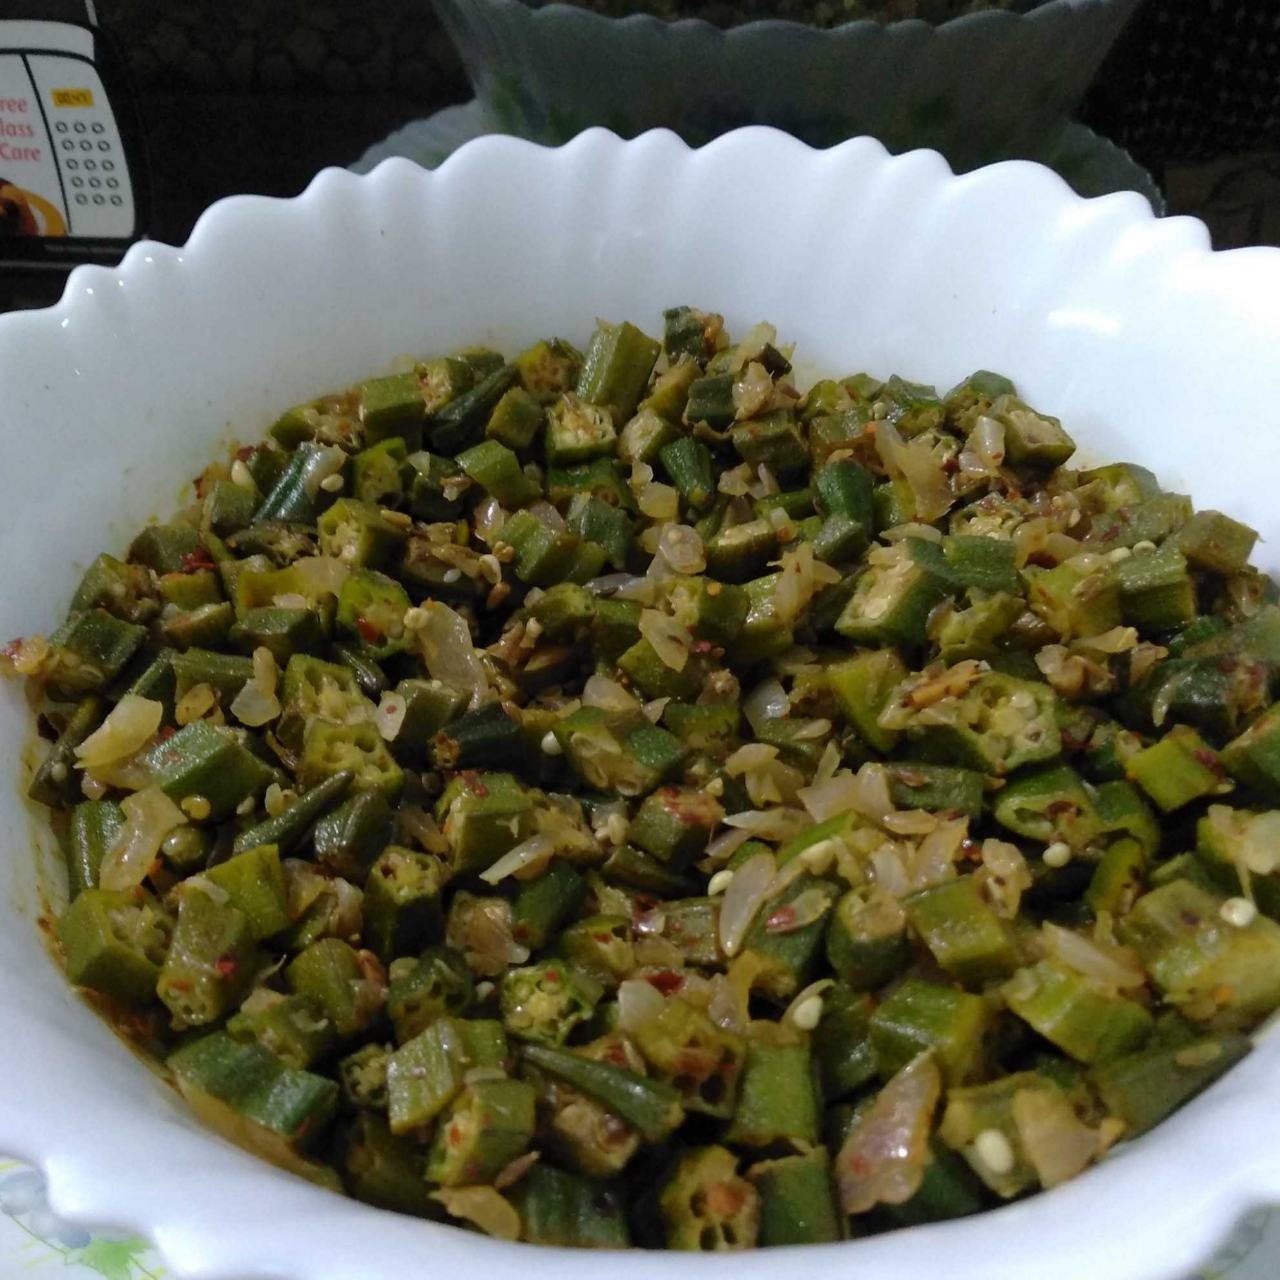 Spicy Bhindi........  Yummilicious Spicy Bhindi made with innovation using fennel and fenugreek seeds, hope you will like it.